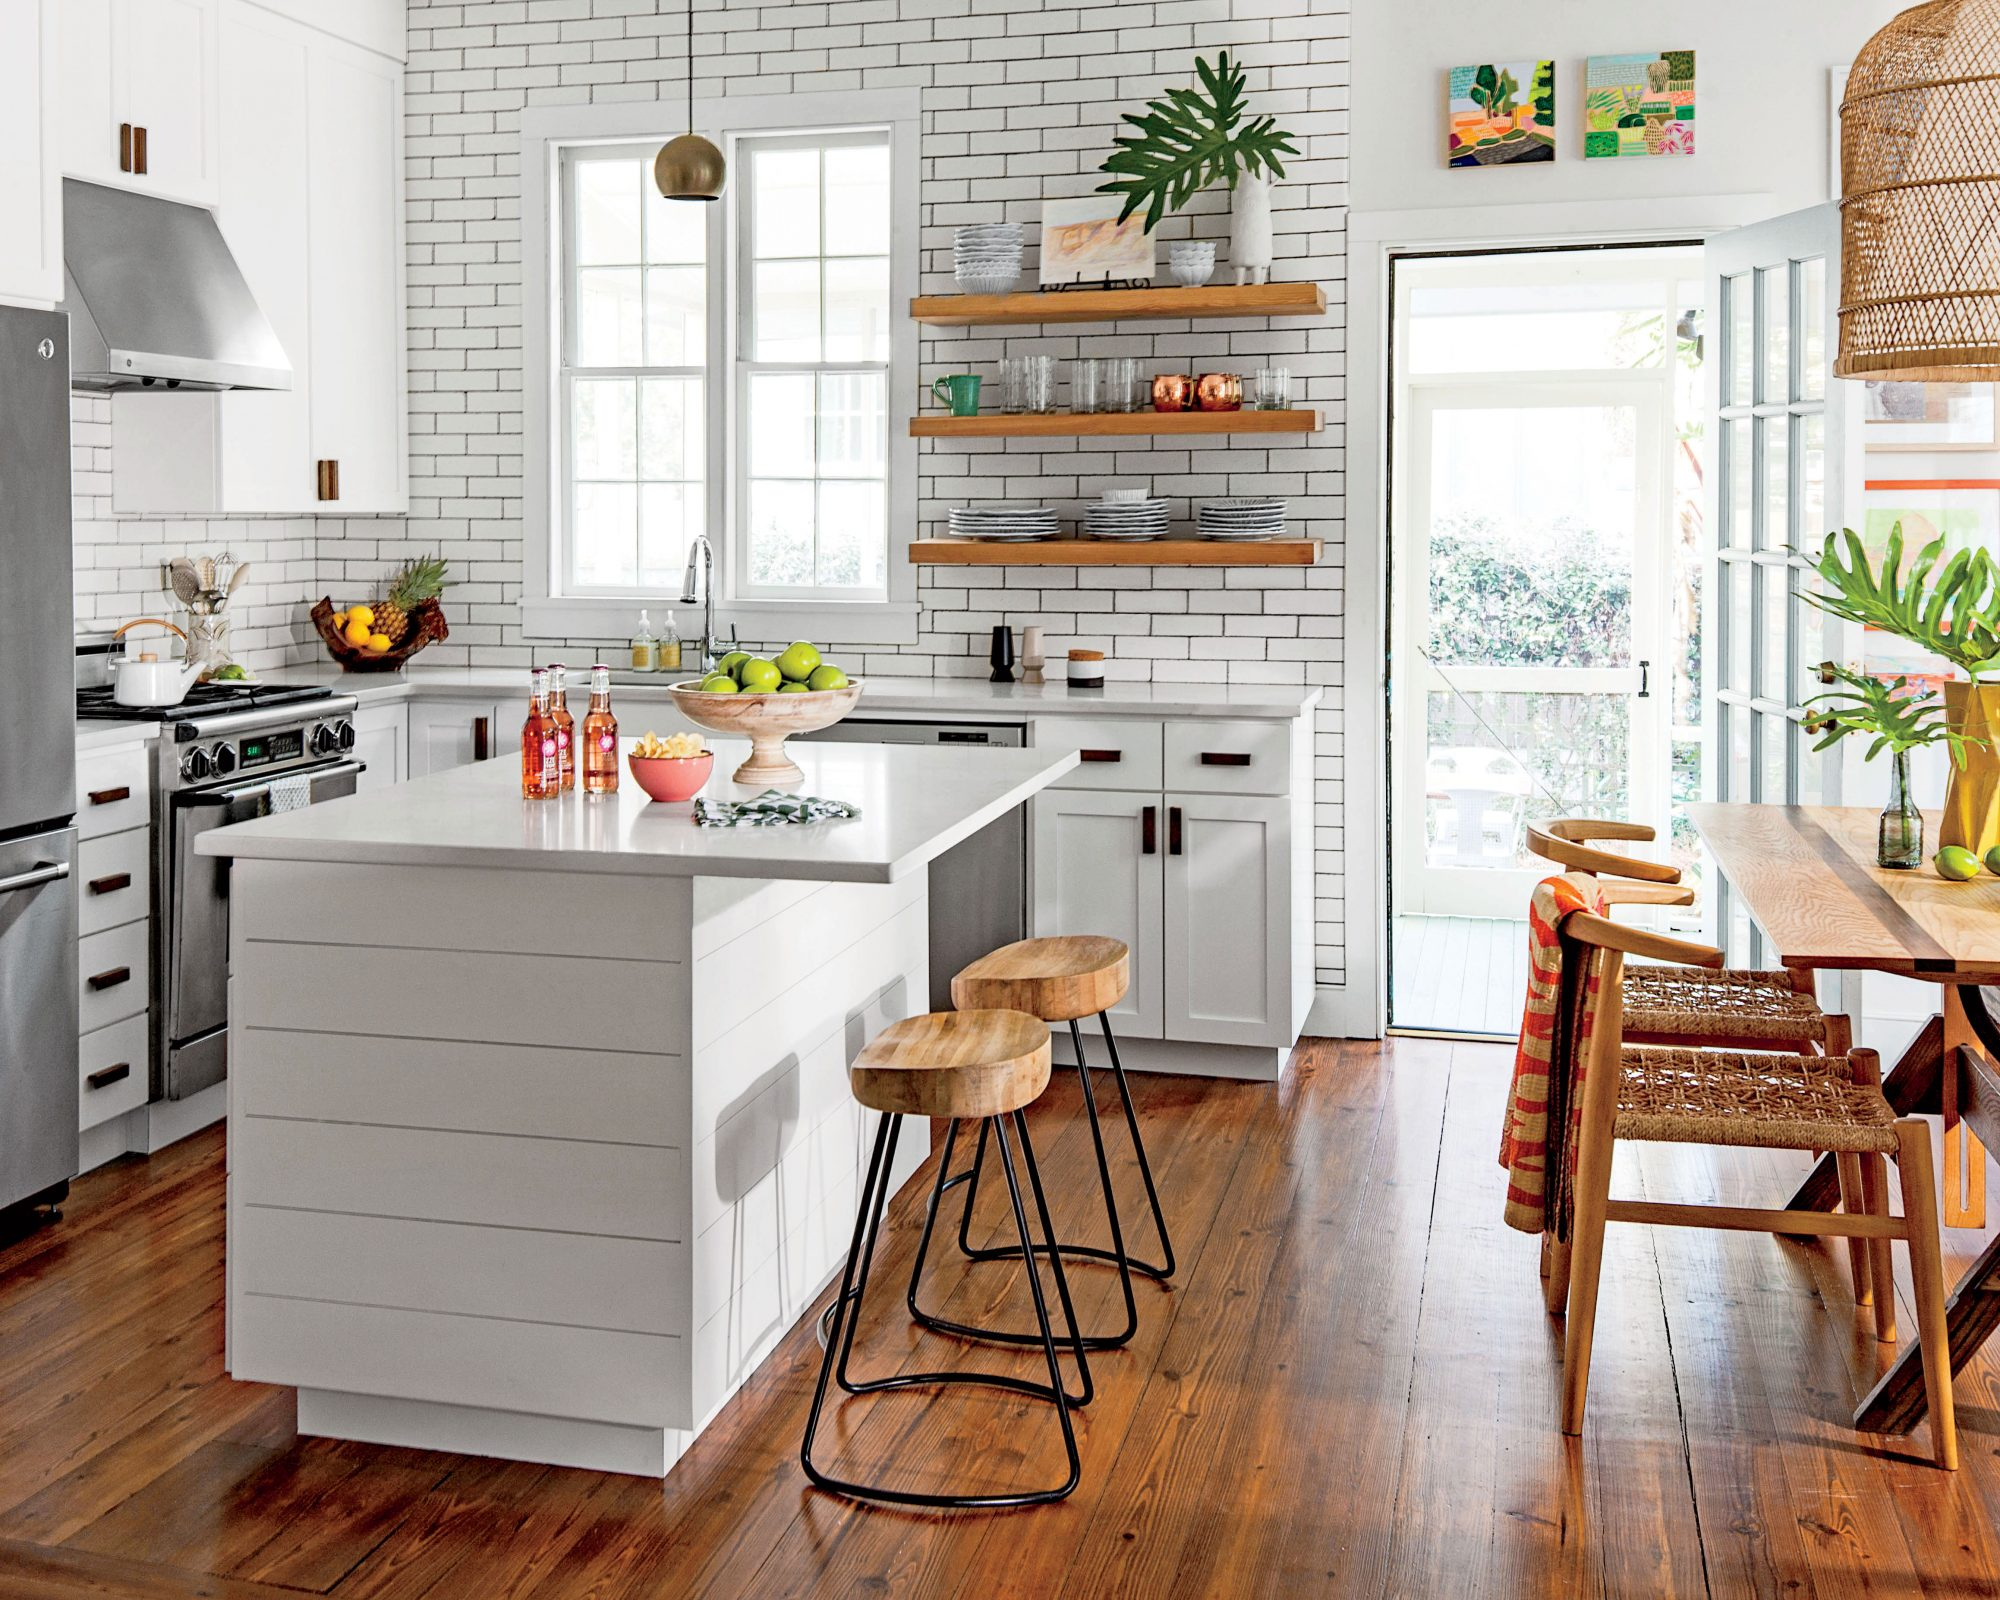 A Charleston Single House: The Kitchen After